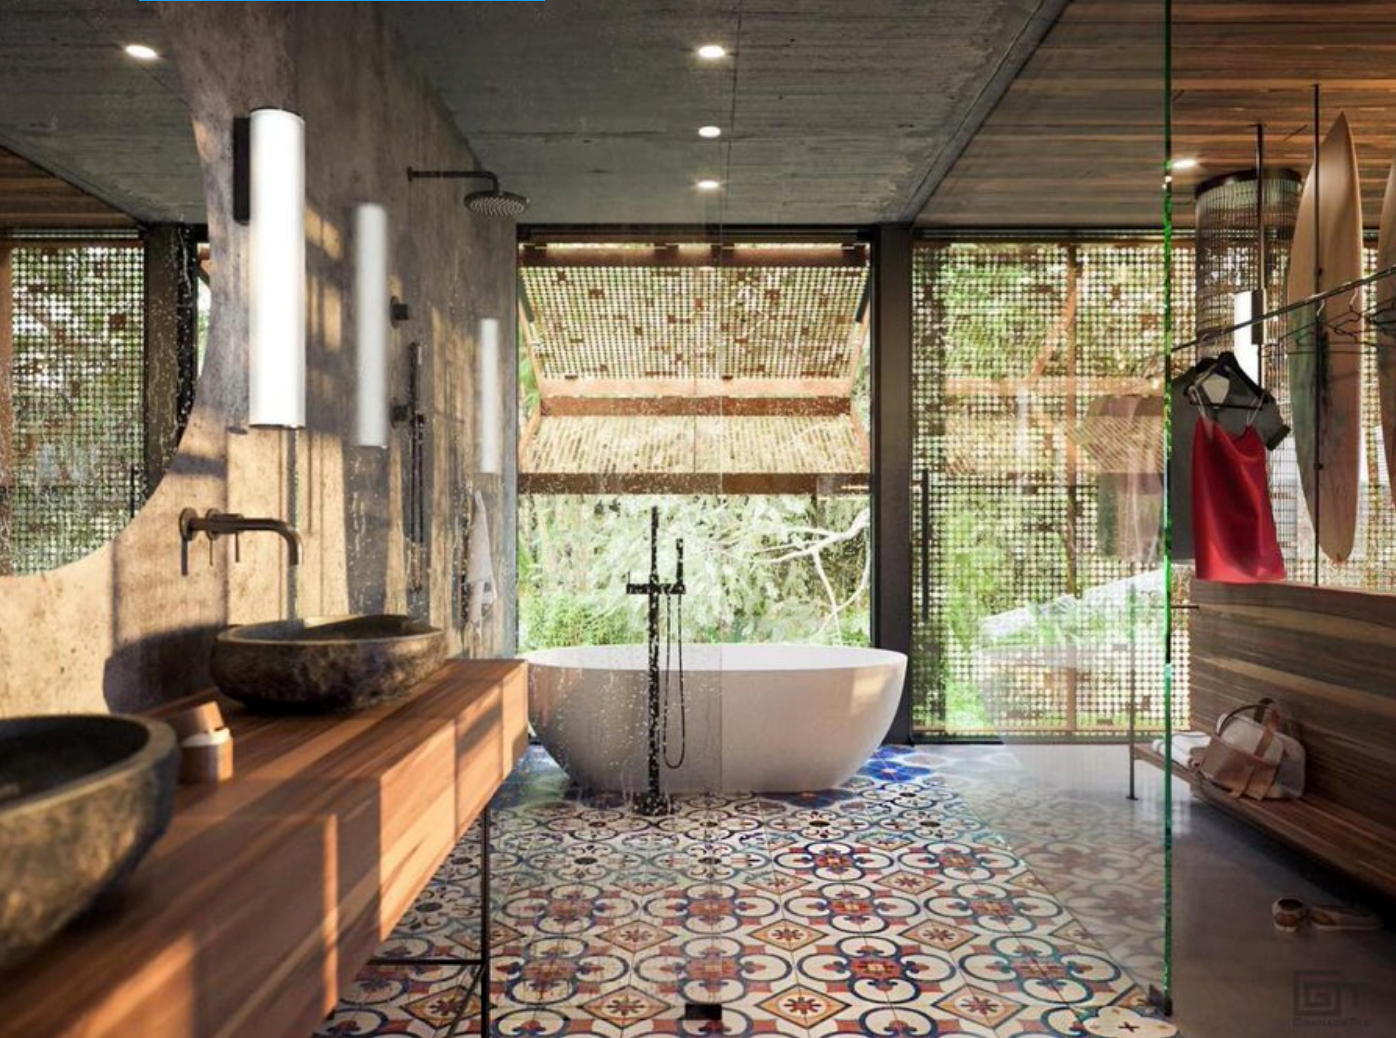 high-end bathroom, designed and photographed by Formafatal